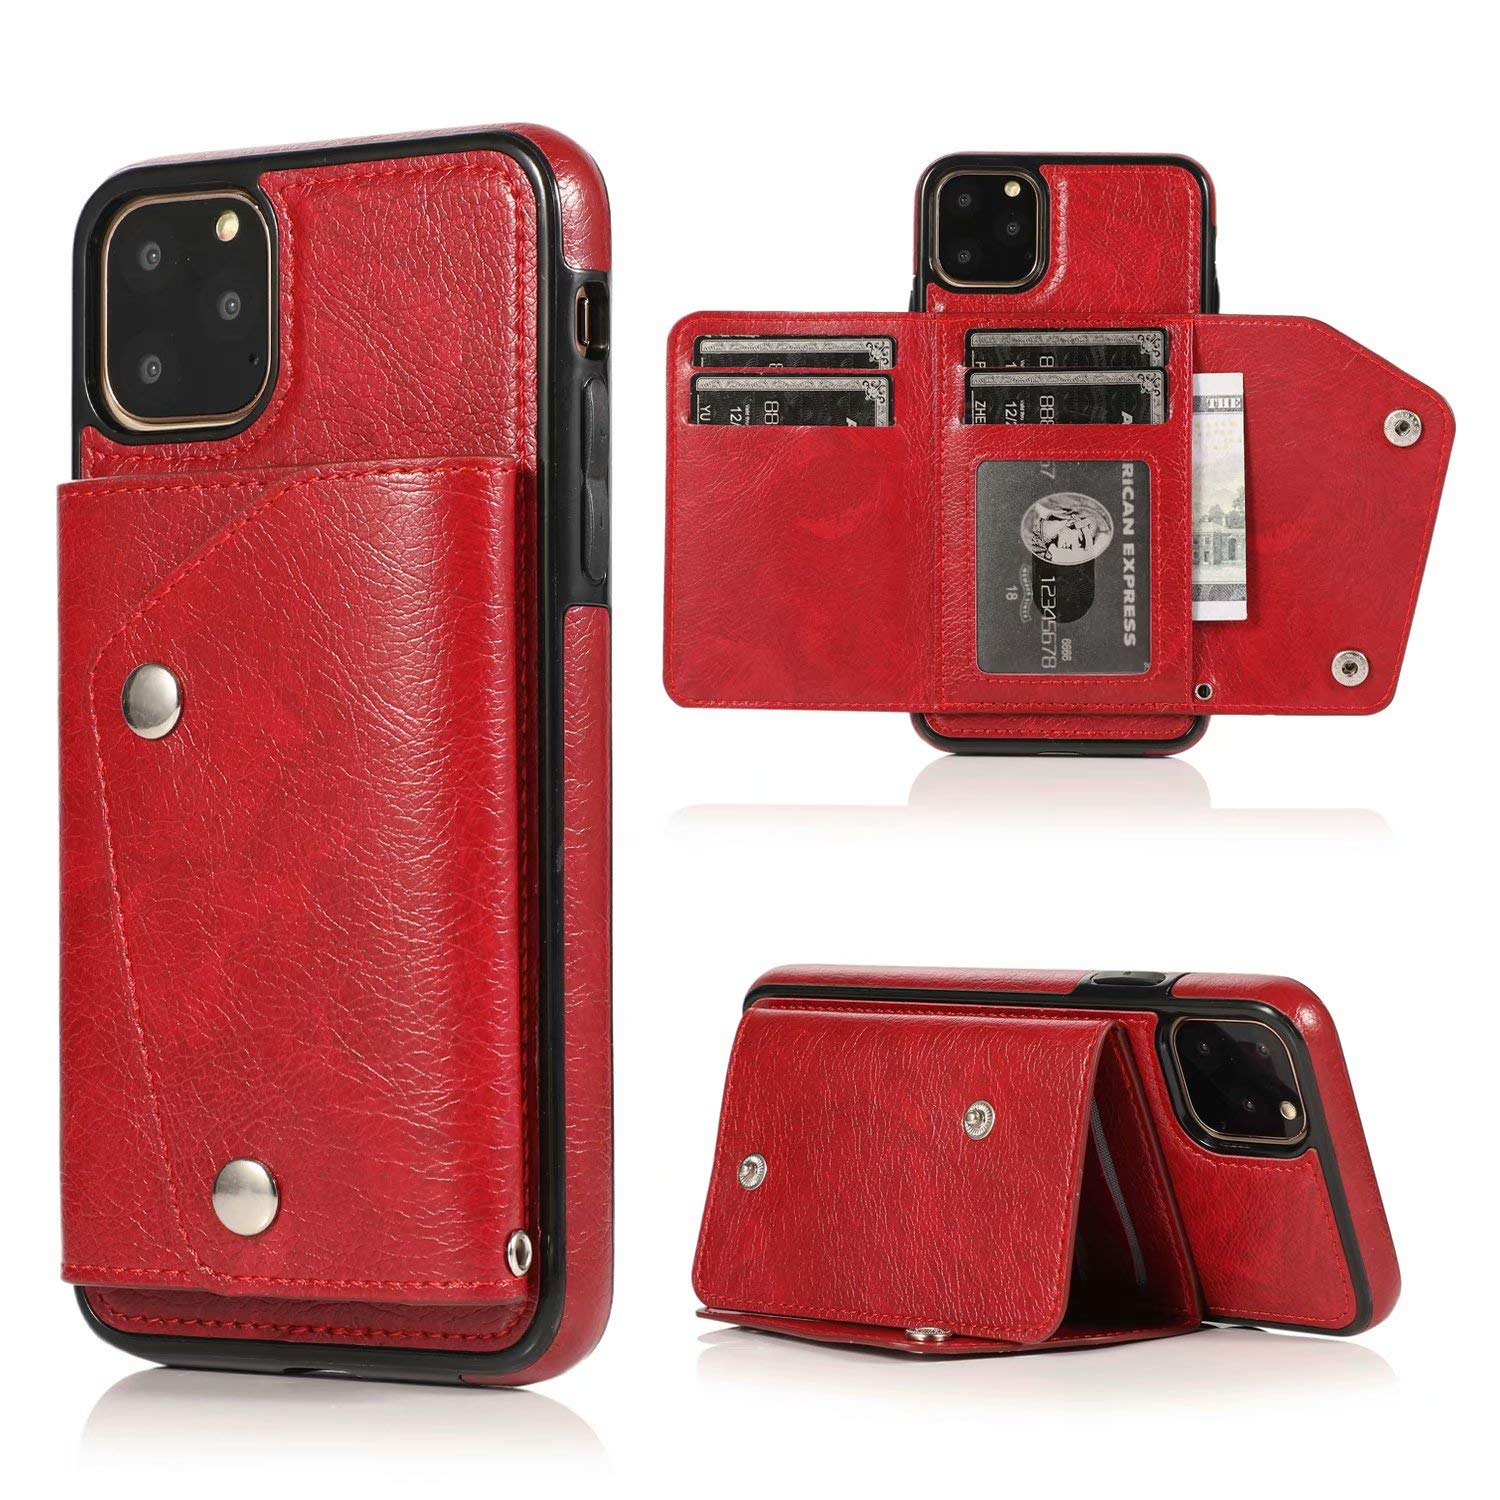 iPhone 11 Pro Wallet Case, Ranyi Leather Wallet Case with Credit Card Holder Slots Wrist Strap Premium PU Leather Flip Folio Wallet Purse Protective Case for 2019 5.8 Inch iPhone 11 Pro (red) by Ranyi